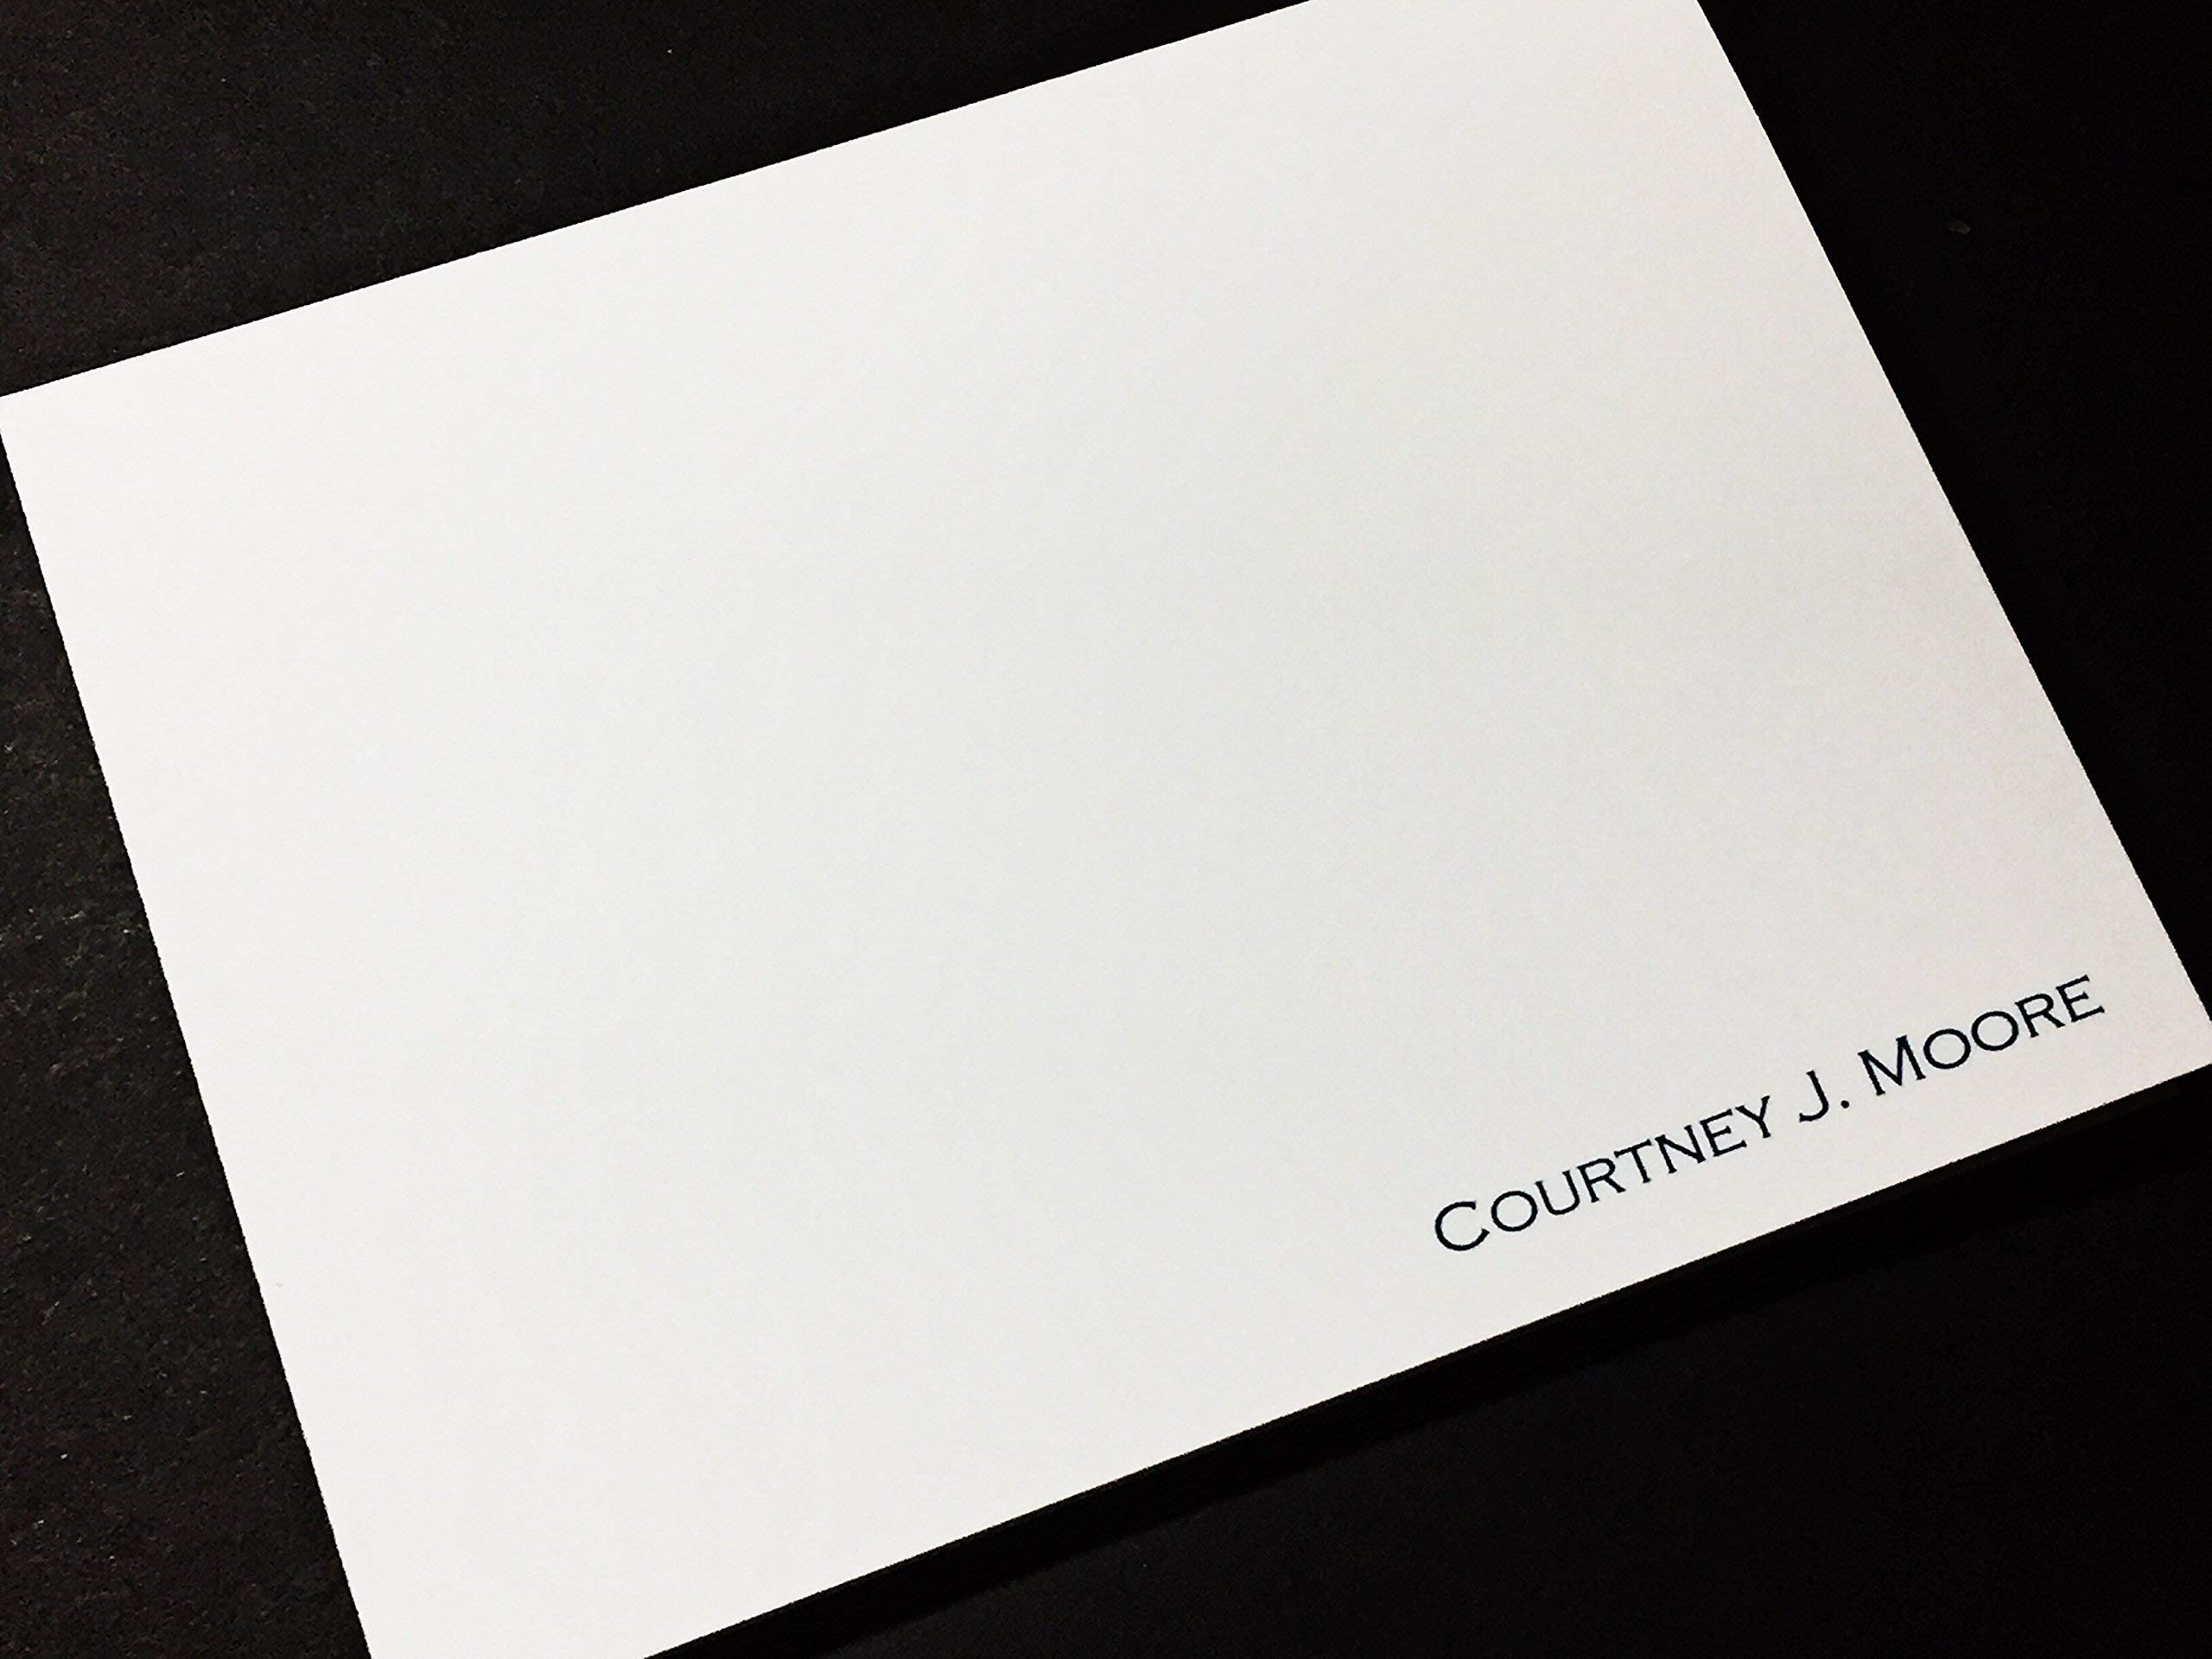 Personalized Stationery Note Cards - Thank You Notes - Set of 12 with Envelopes